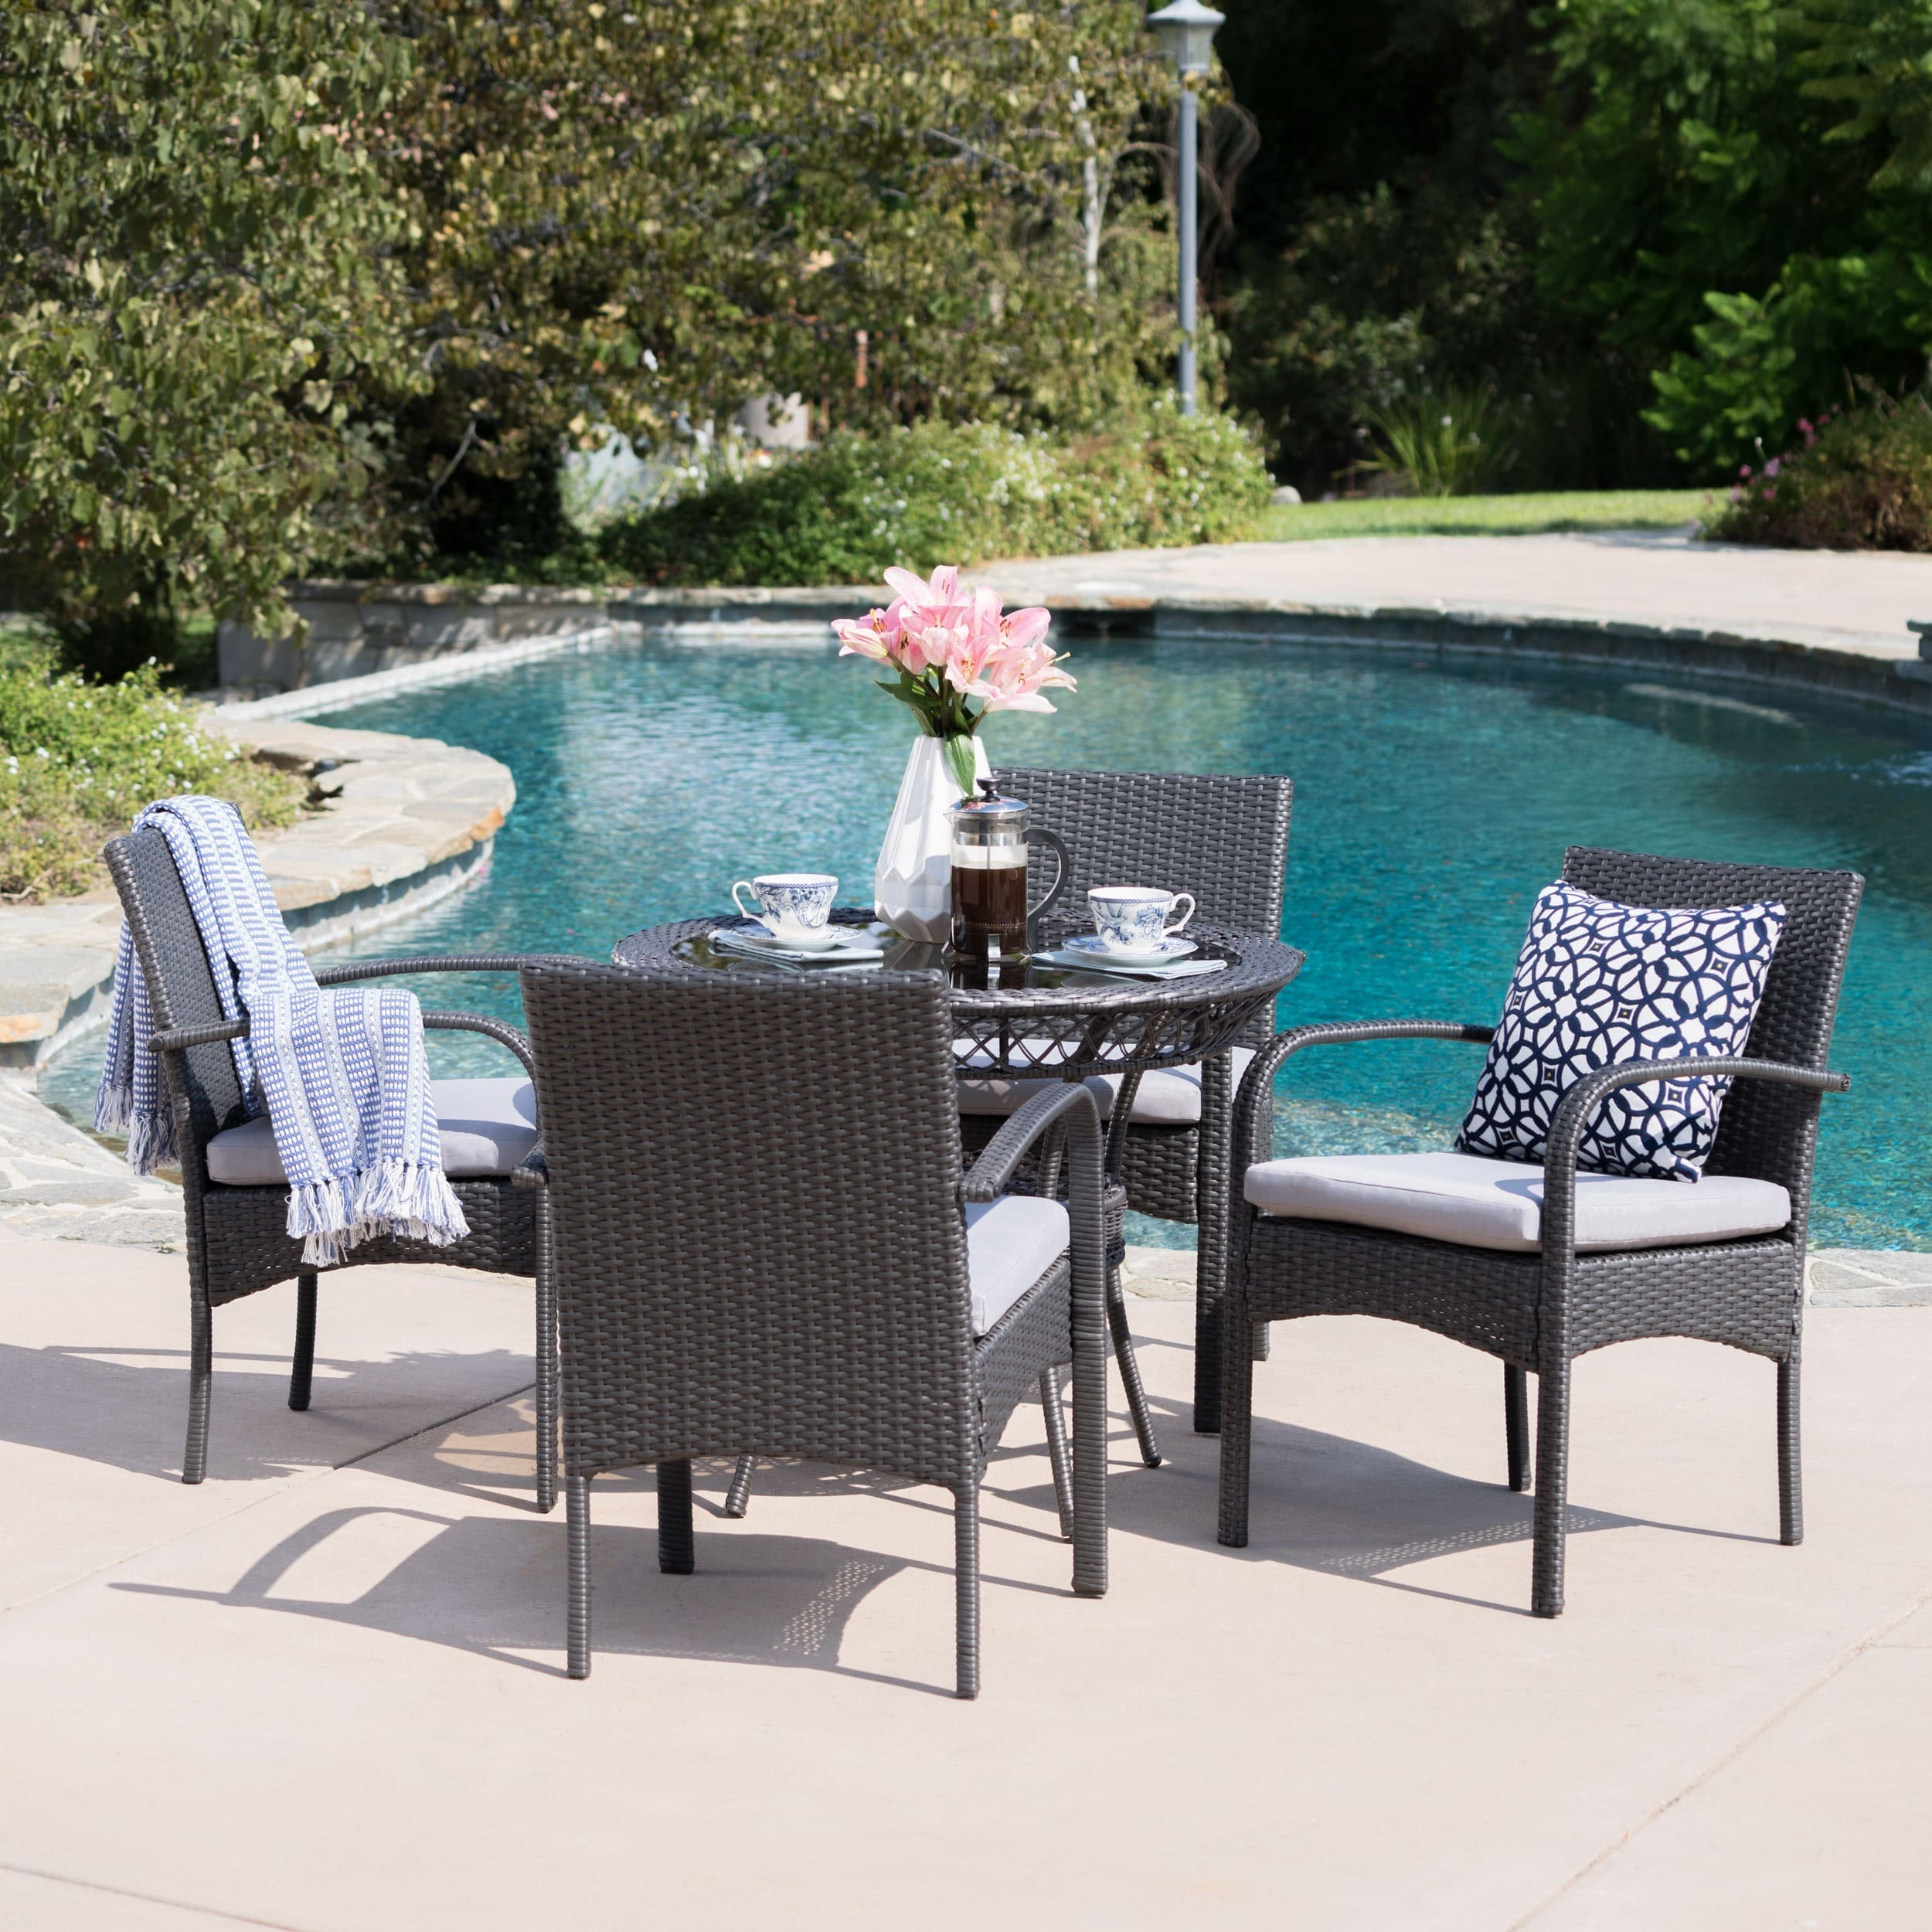 Christopher Knight Home Charles Outdoor 5-piece Wicker Dining Set with Cushions by